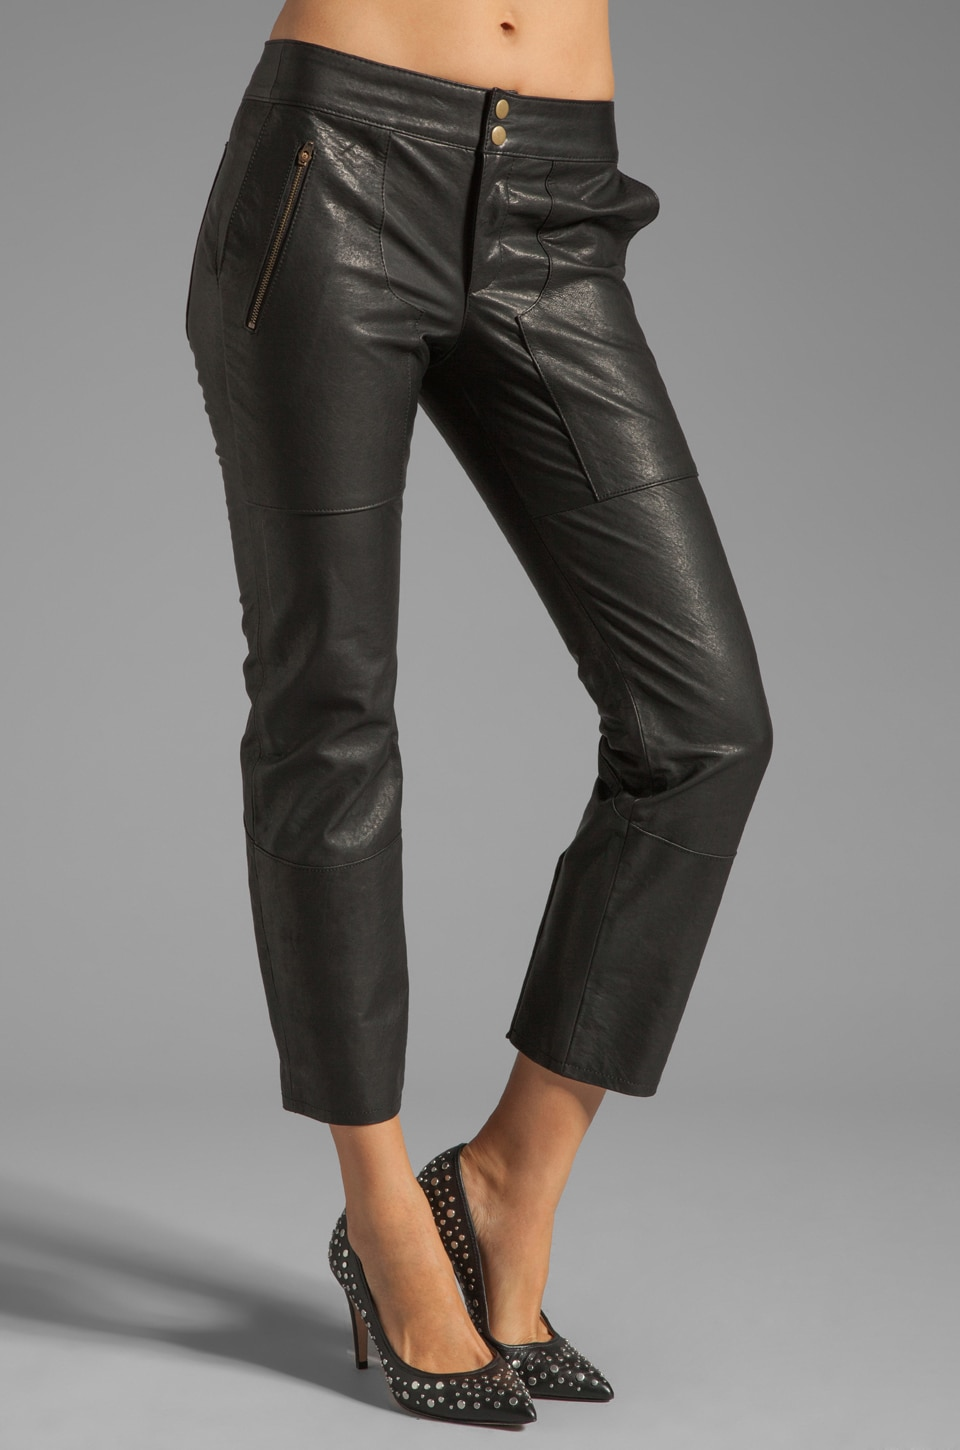 DEREK LAM 10 CROSBY Slim Leather Pant with Lacing in Black